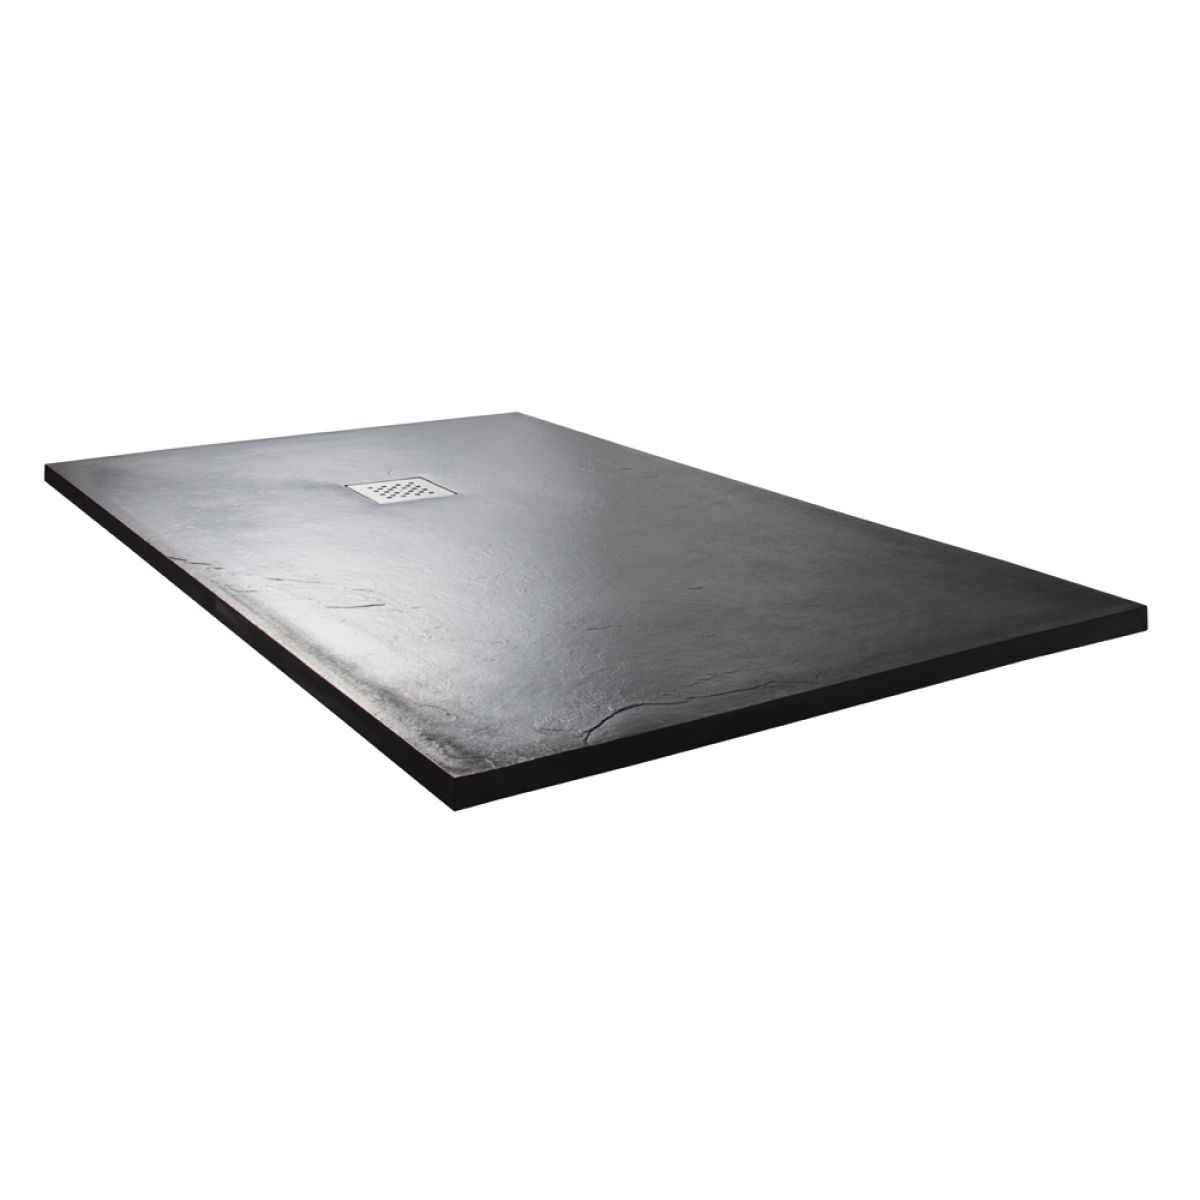 Cassellie Cass Stone Anthracite Slate Effect Rectangular Shower Tray 1200 x 900mm